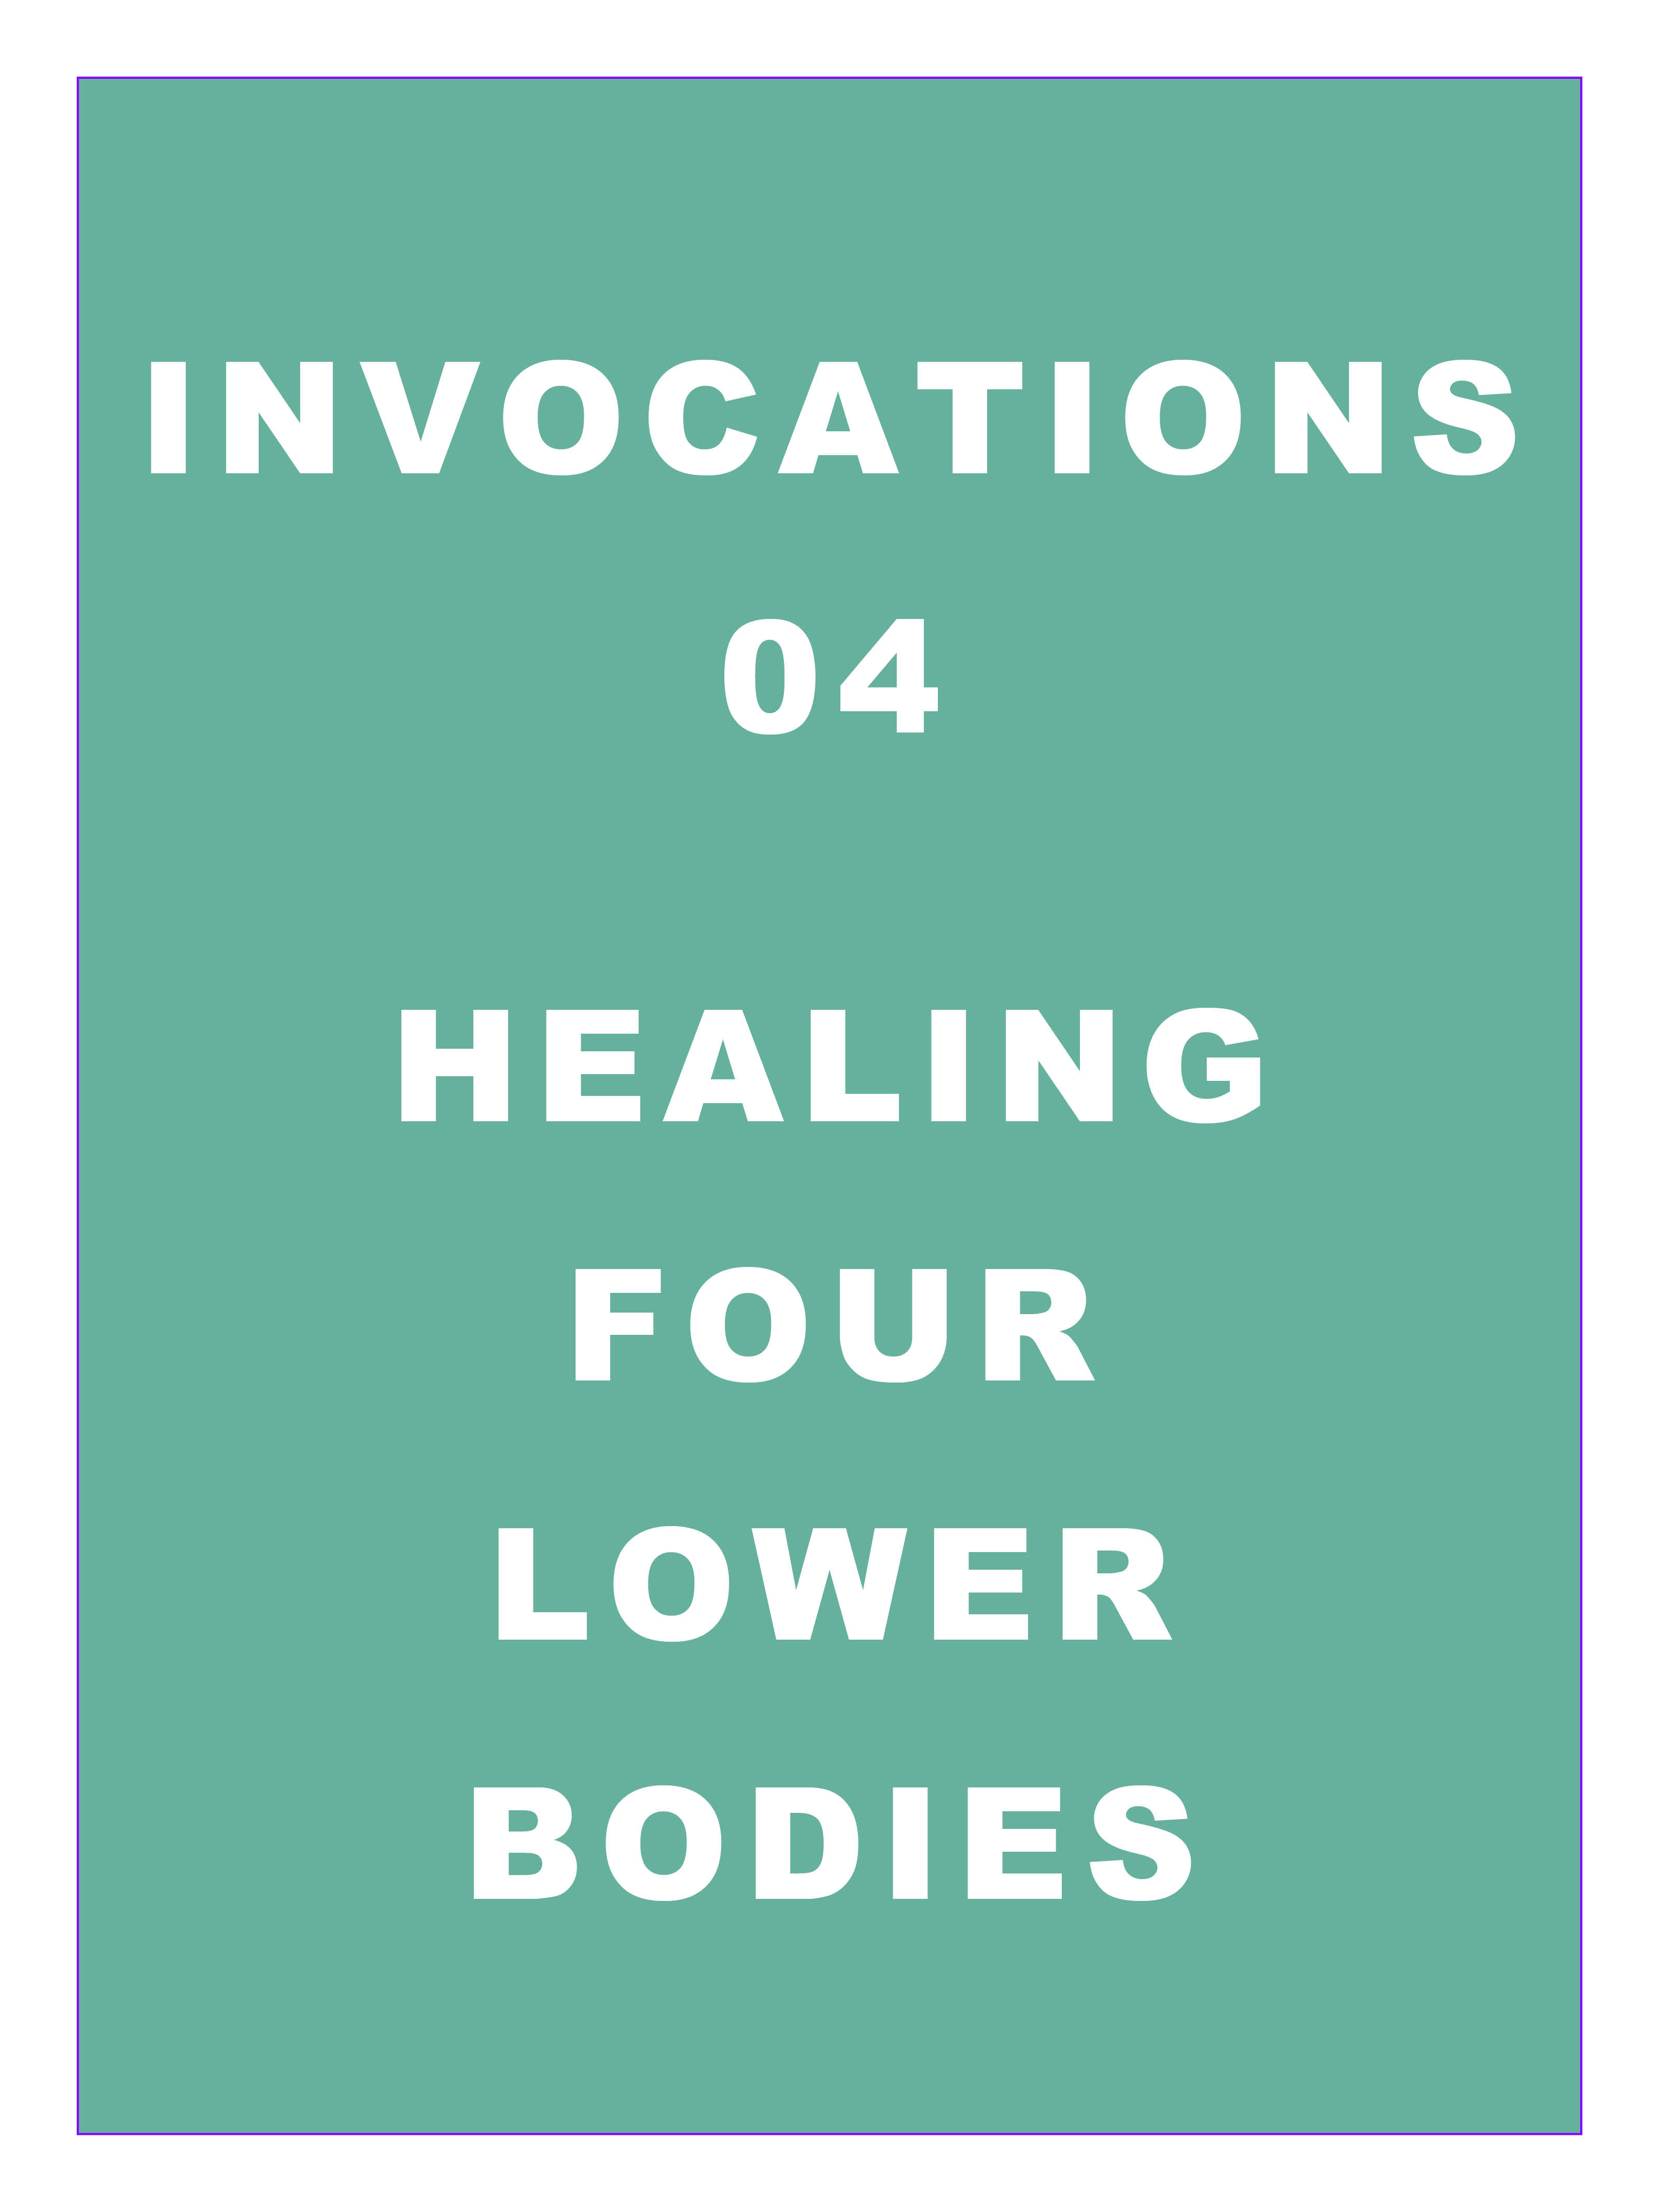 Invocations 04: Healing Four Lower Bodies